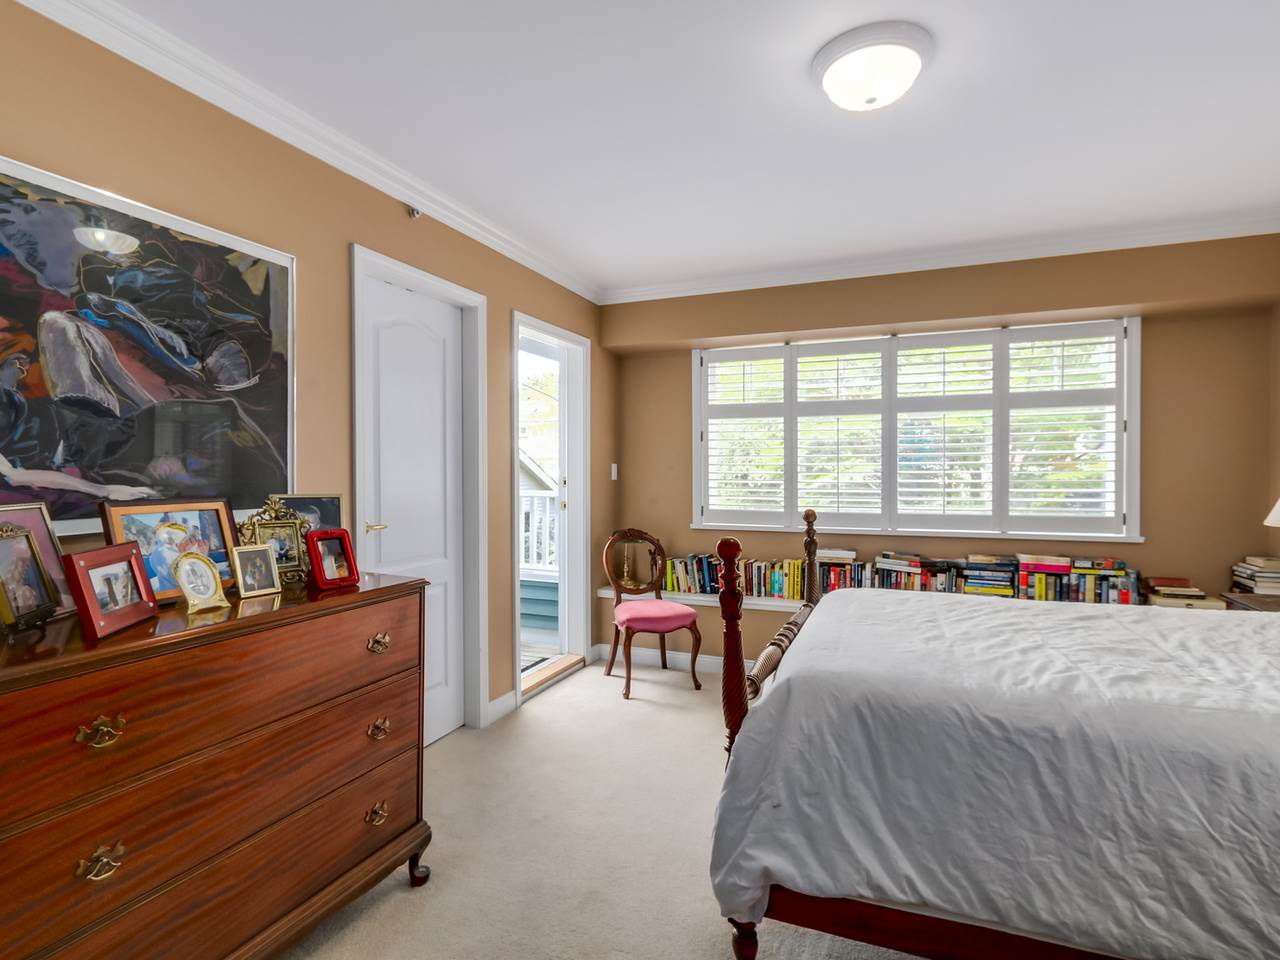 Photo 12: 1825 W 11TH Avenue in Vancouver: Kitsilano Townhouse for sale (Vancouver West)  : MLS® # R2061107